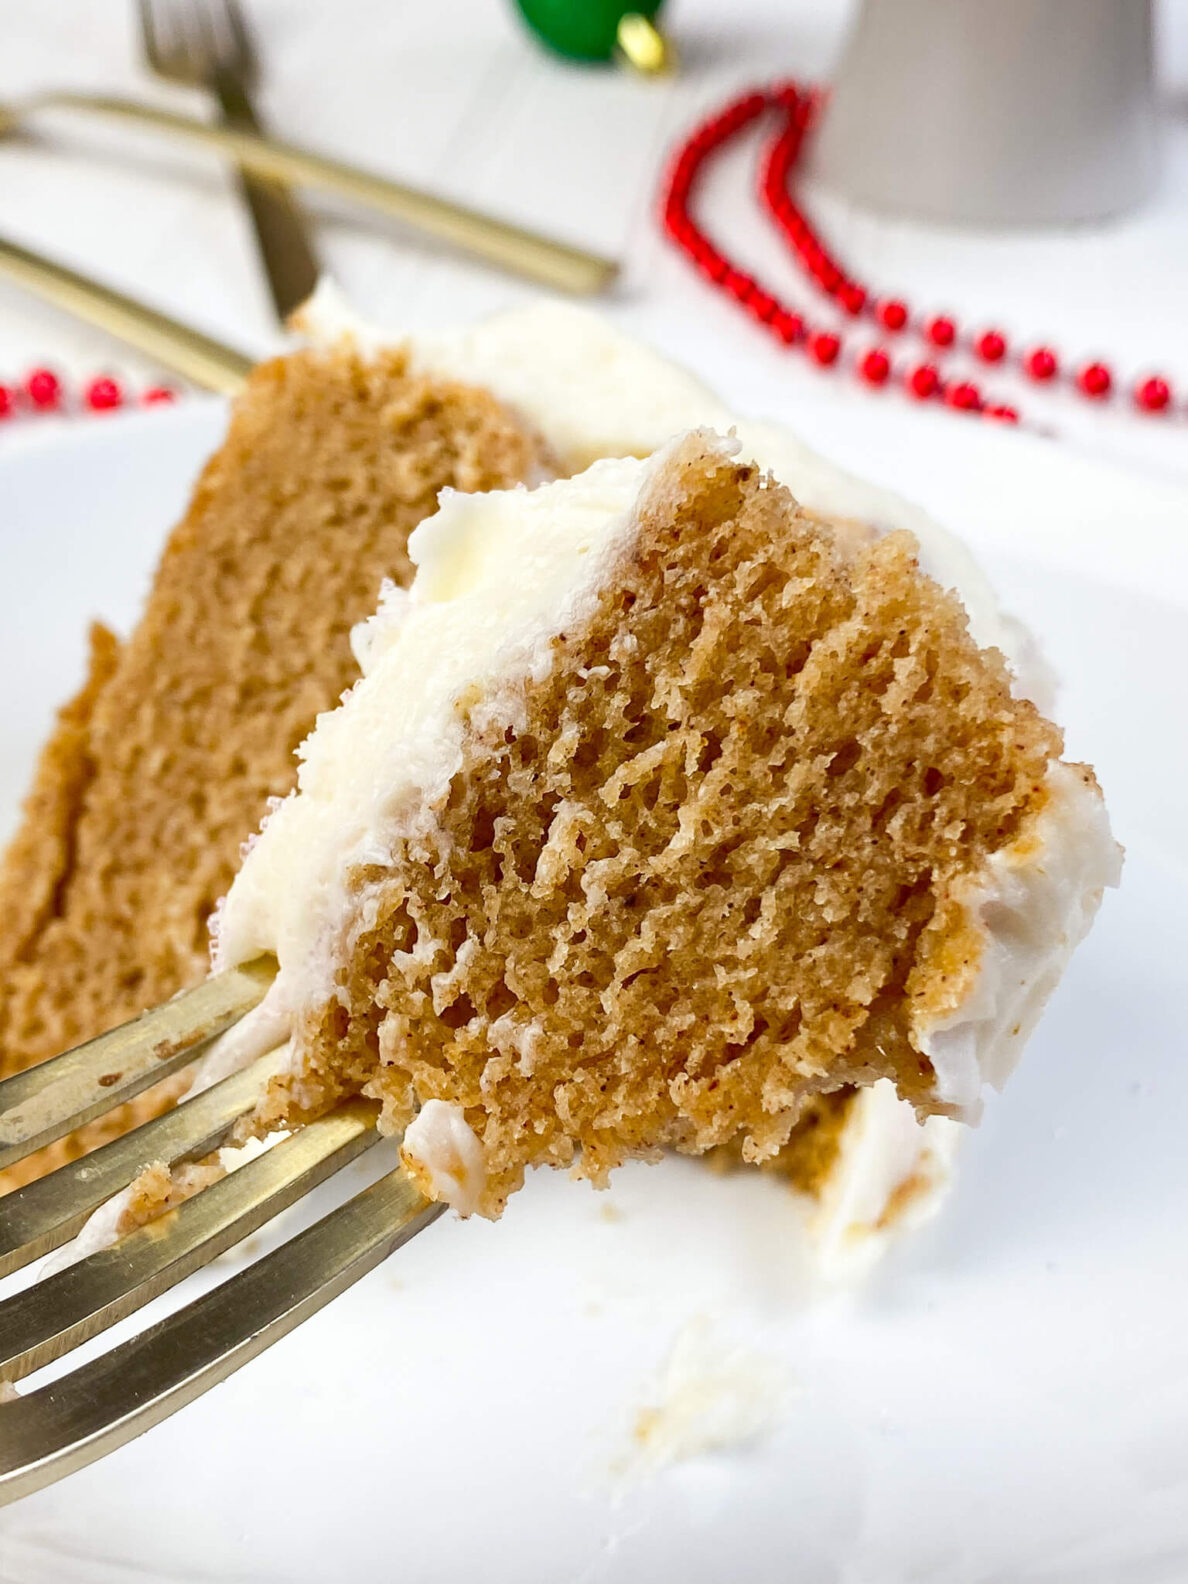 Kate's Safe and Sweet - Gingerbread Cake Piece